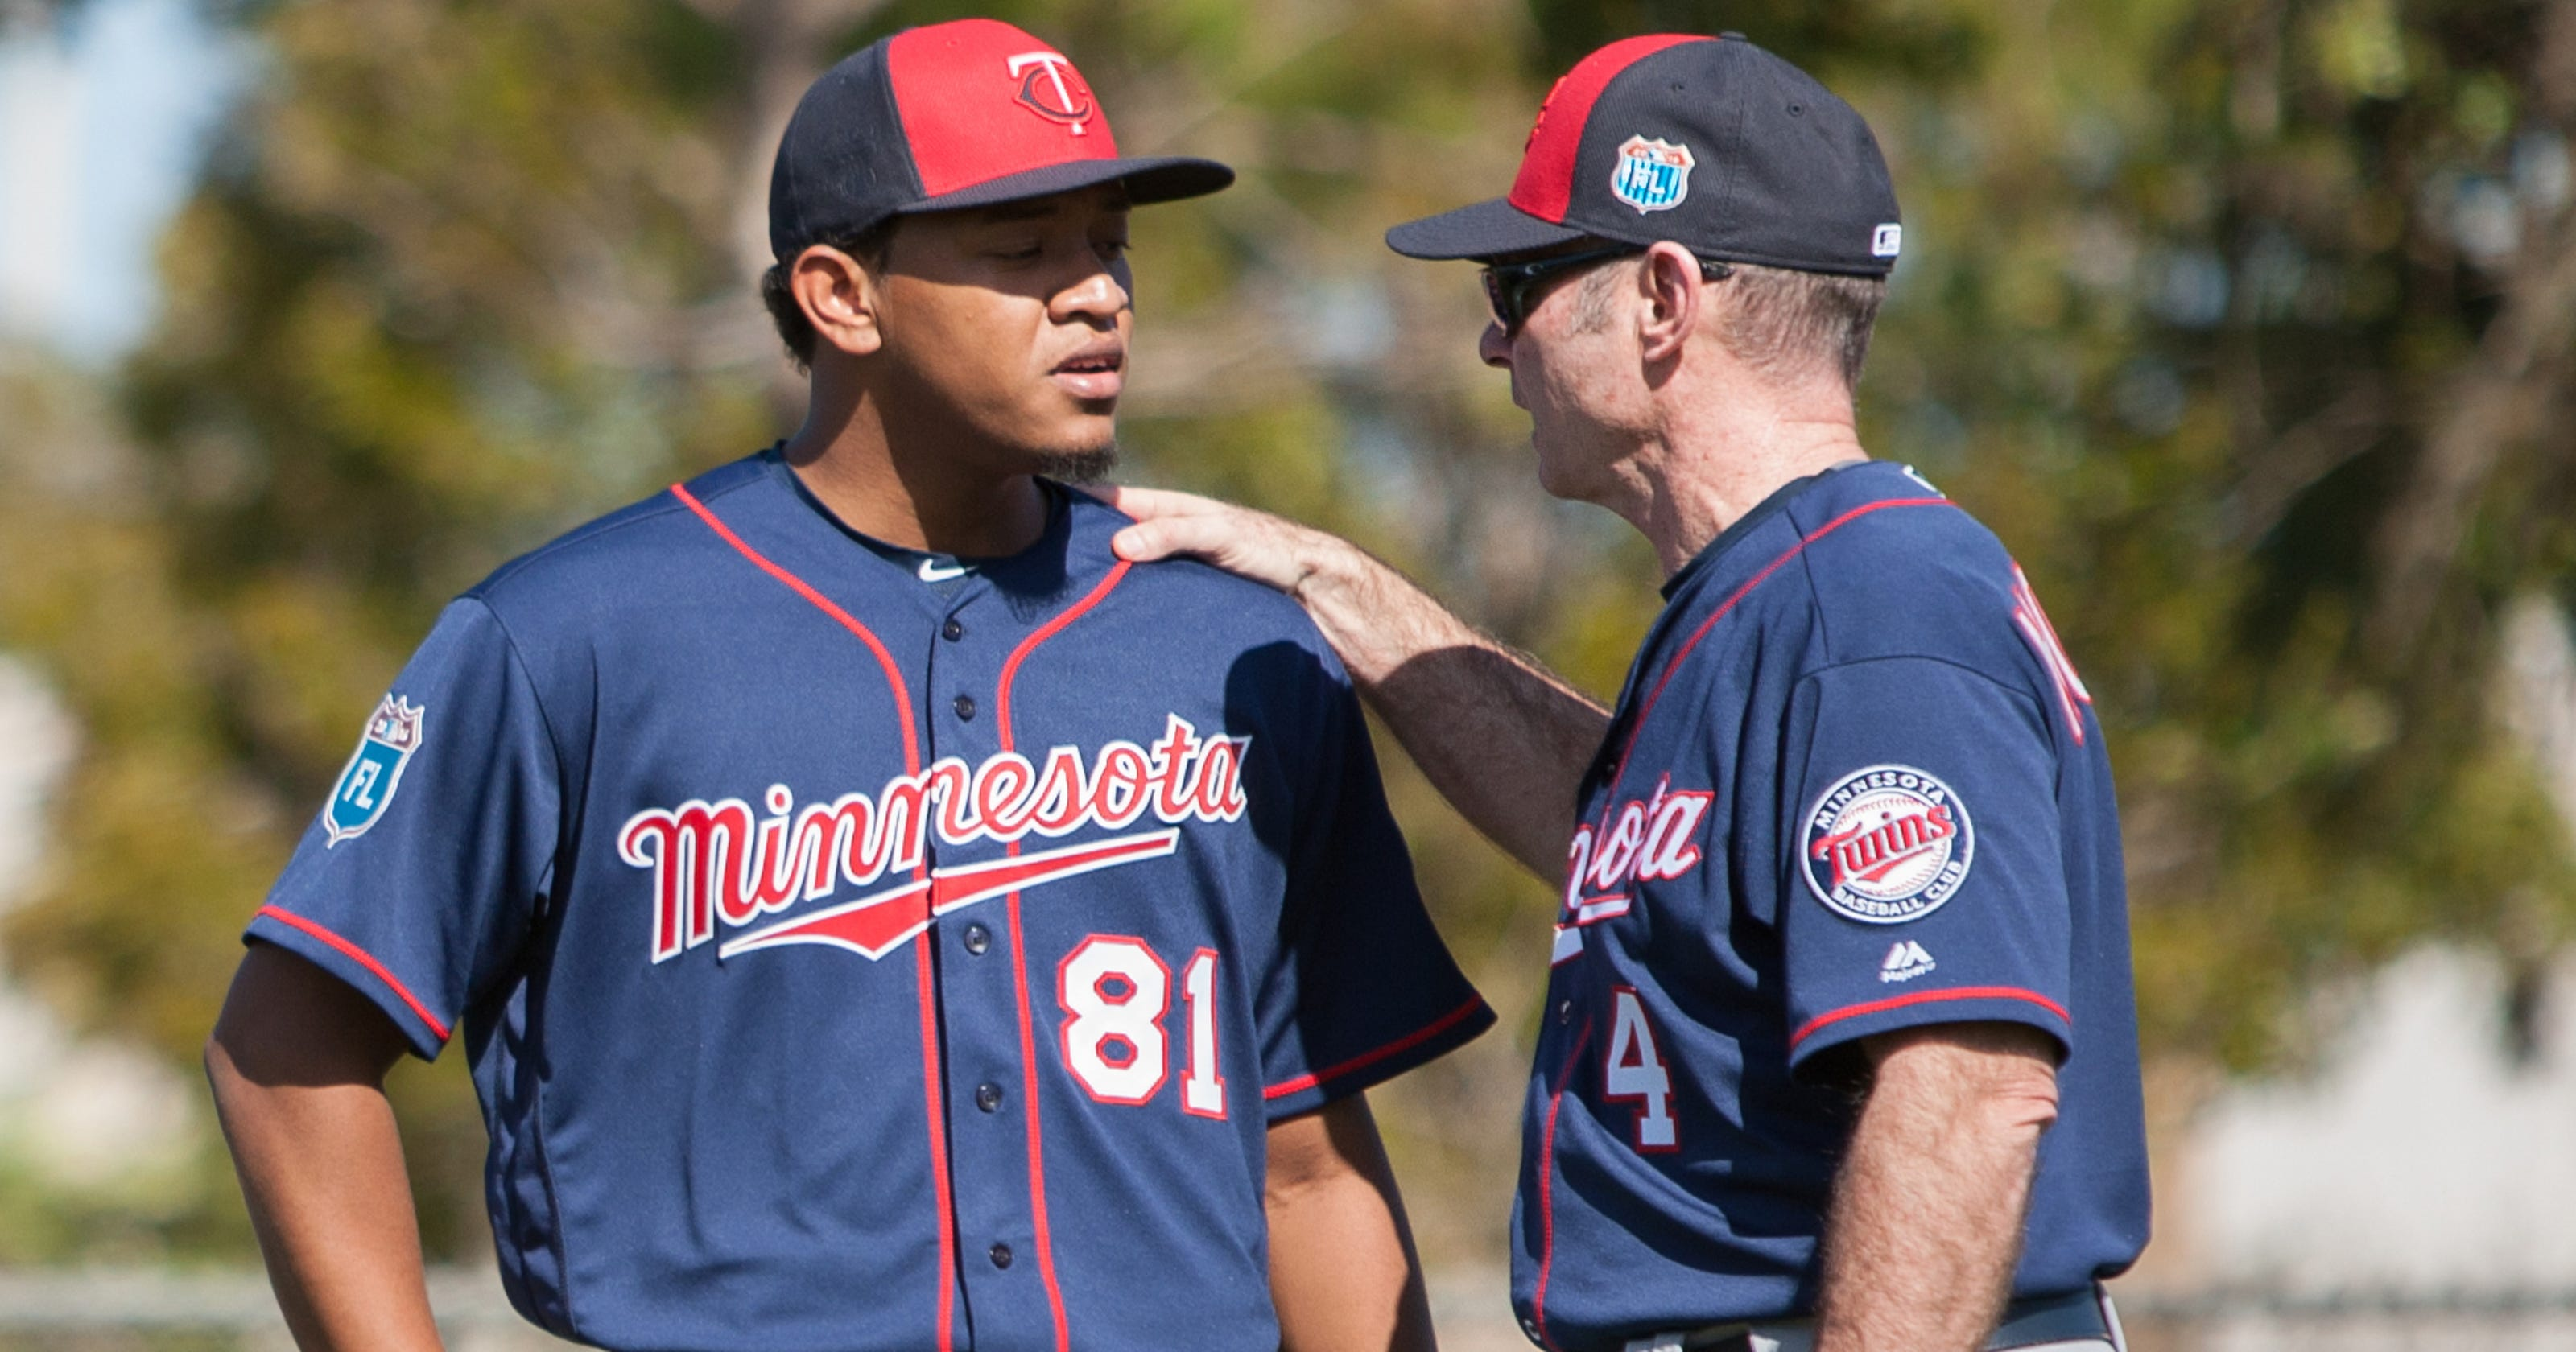 spring training minnesota twins tickets on sale online and by phone on tuesday. Black Bedroom Furniture Sets. Home Design Ideas